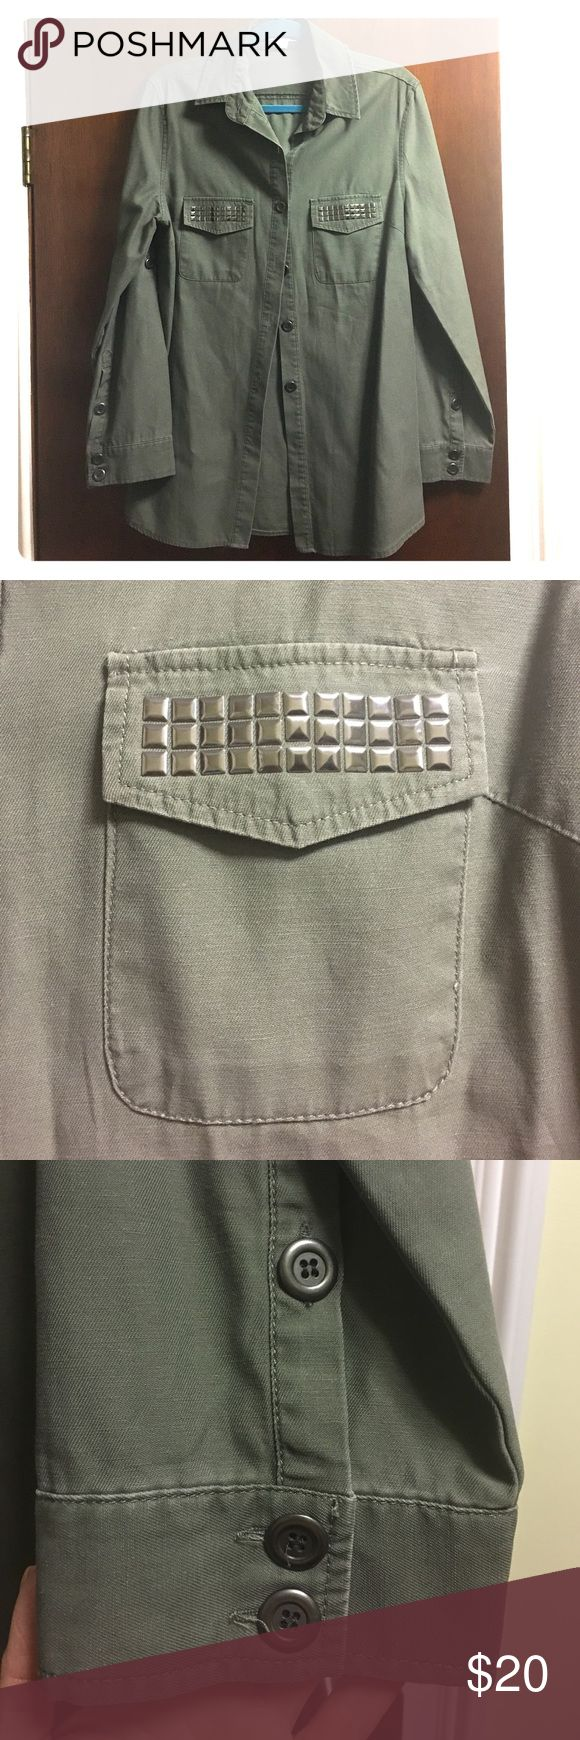 Woman's military style shirt Fun olive green/grayish military style button down. Embellished pockets and buttoned sleeves. Size Large, never worn! Cotton On Tops Button Down Shirts